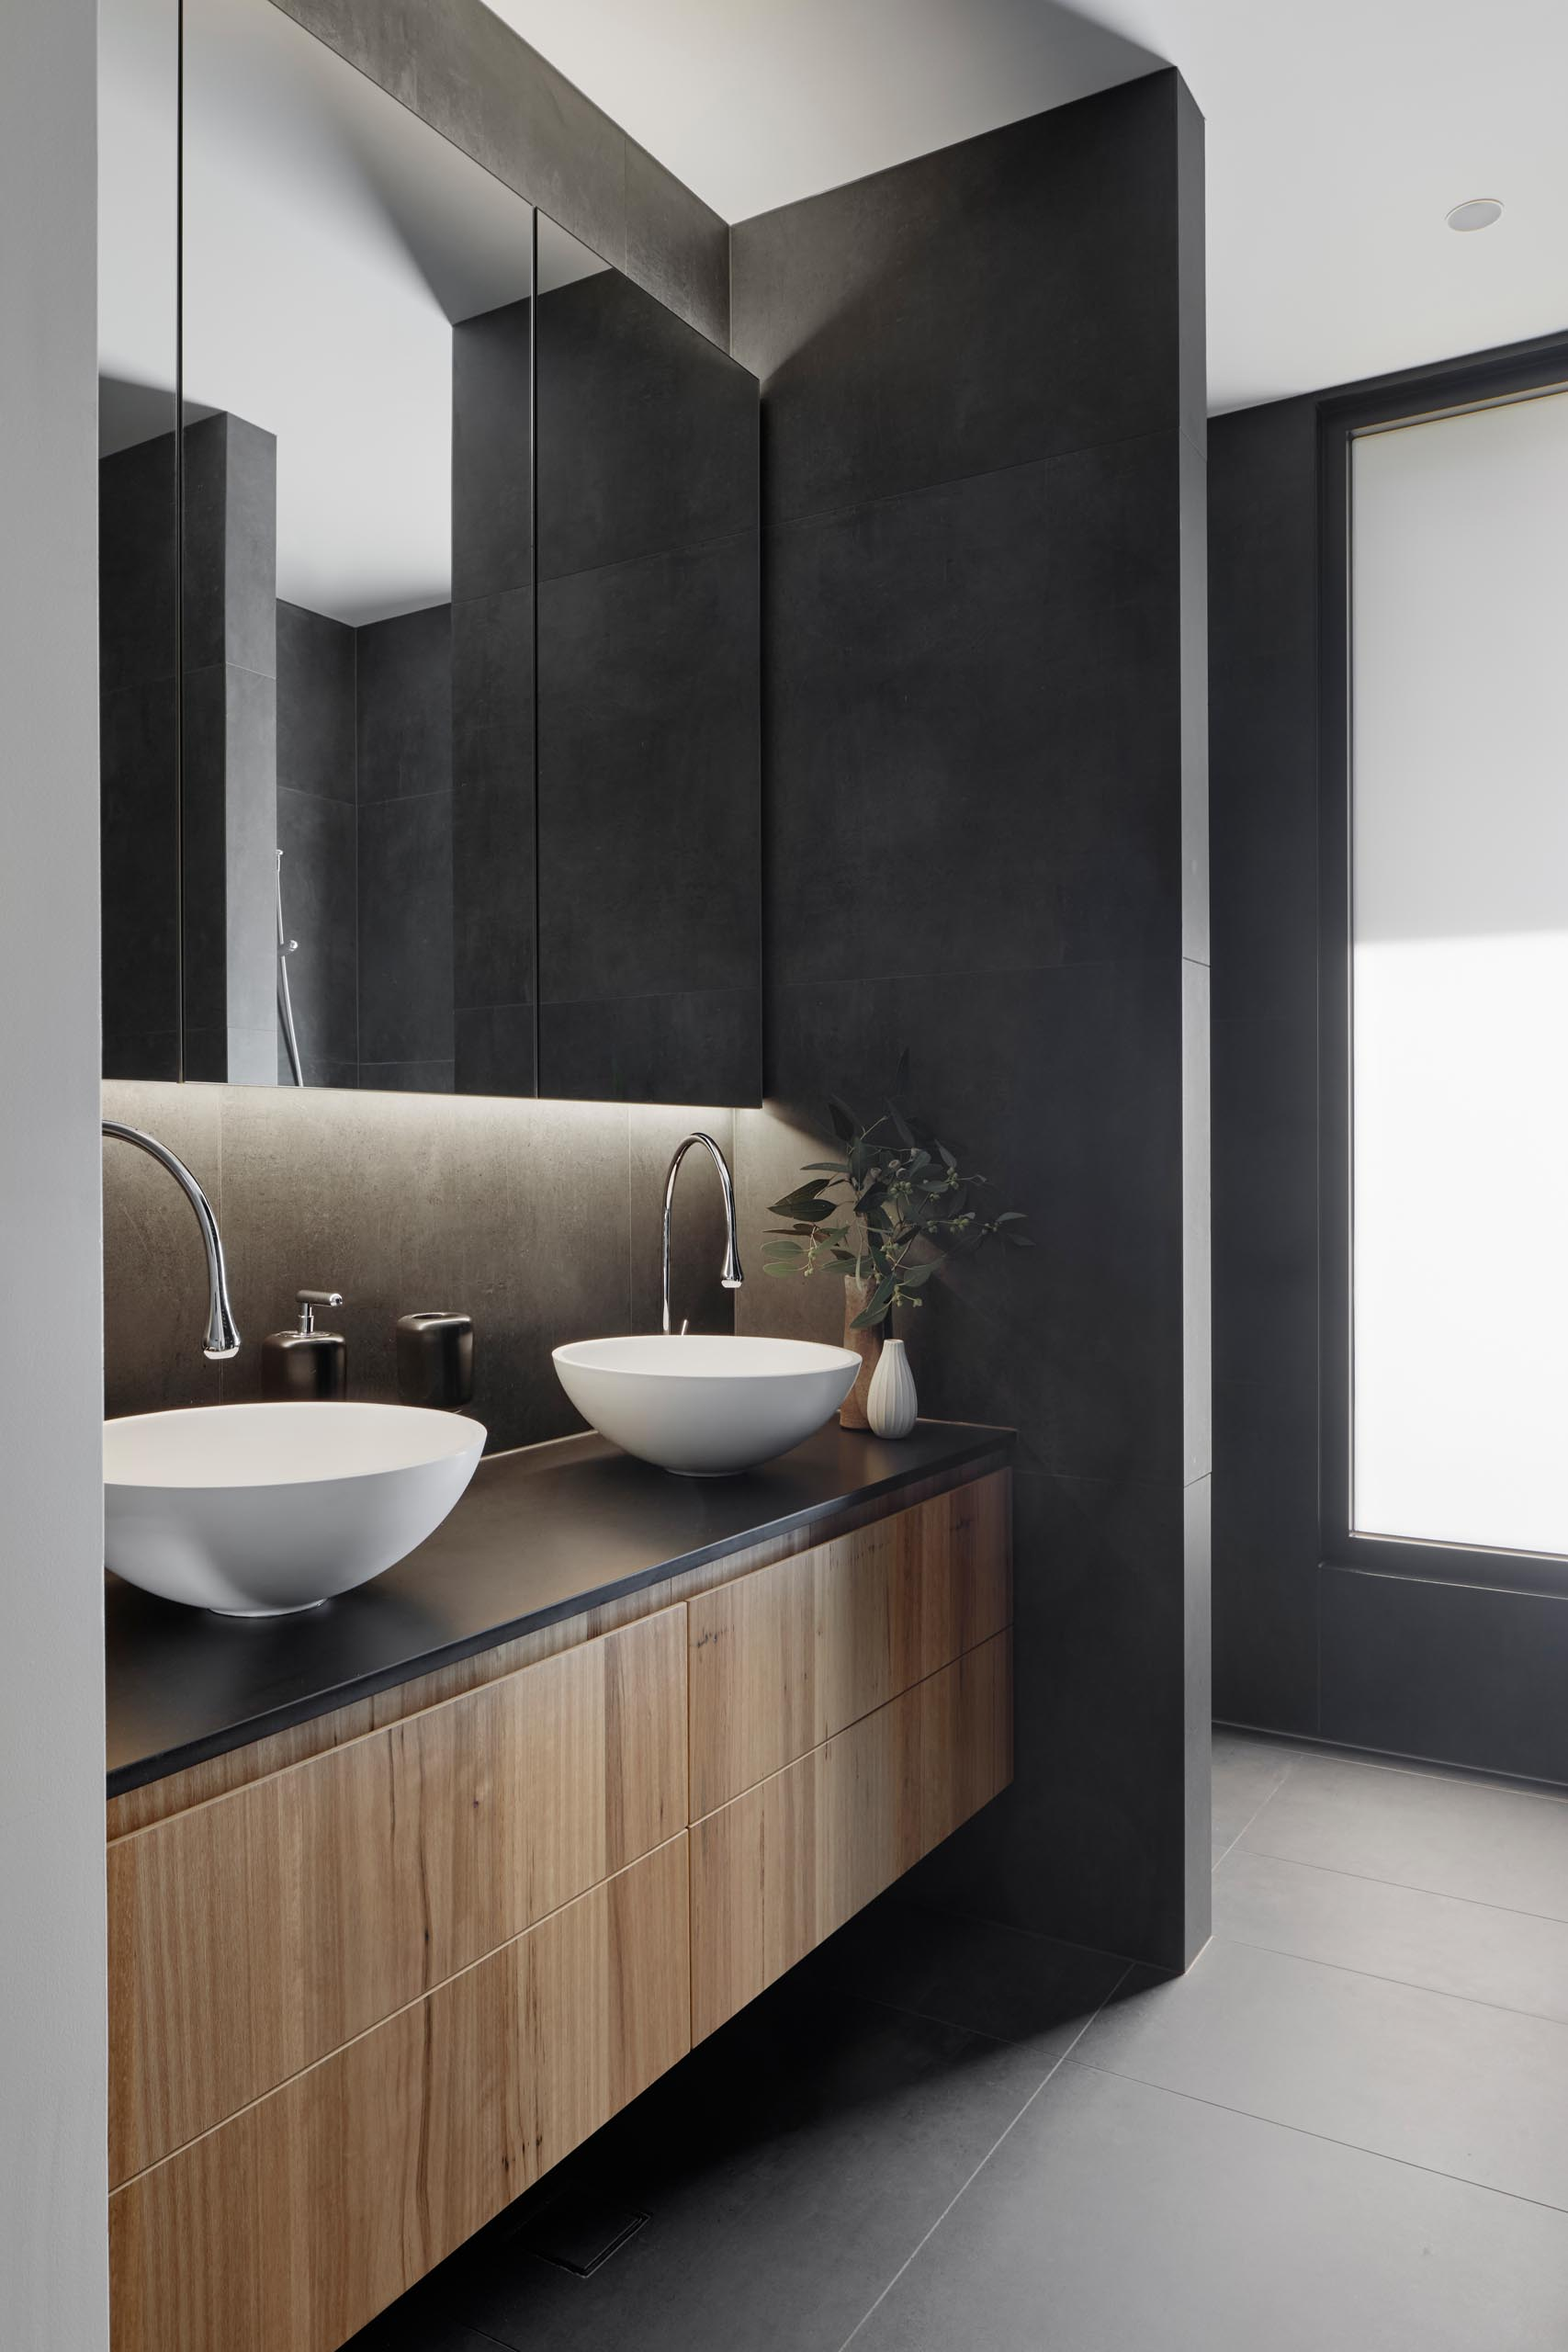 In this modern bathroom, dark gray walls and floors are combined with a wood vanity, white basins, and a backlit mirror.